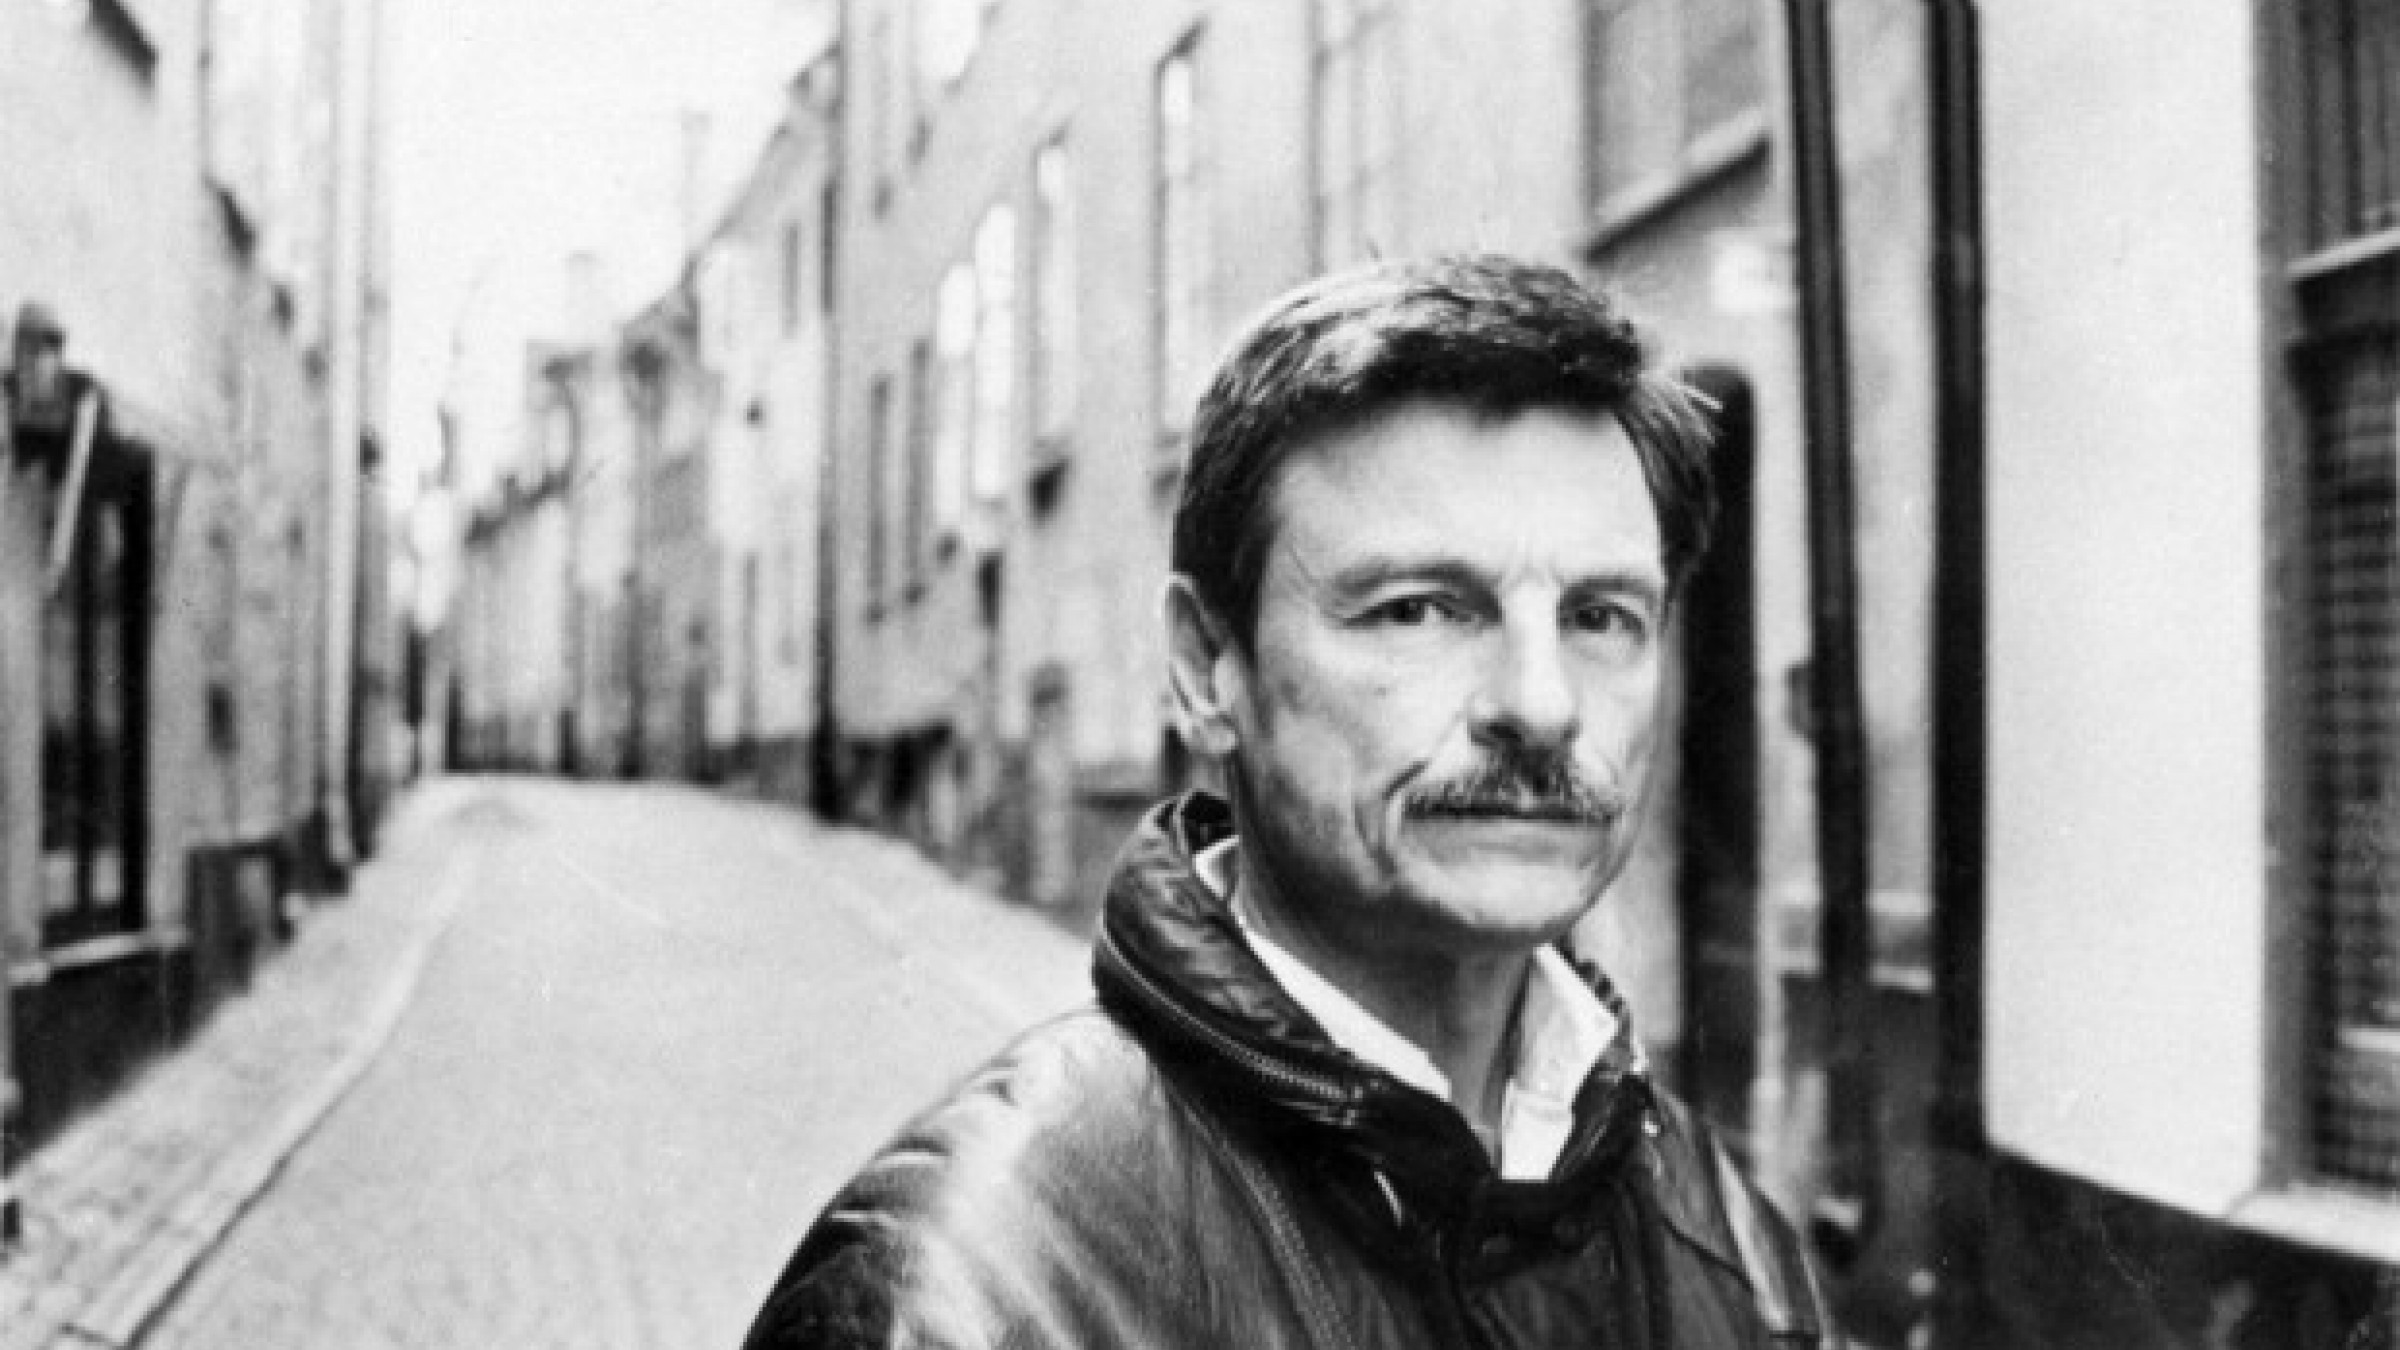 The Top 10 Favorite Films of Legendary Director Andrei Tarkovsky